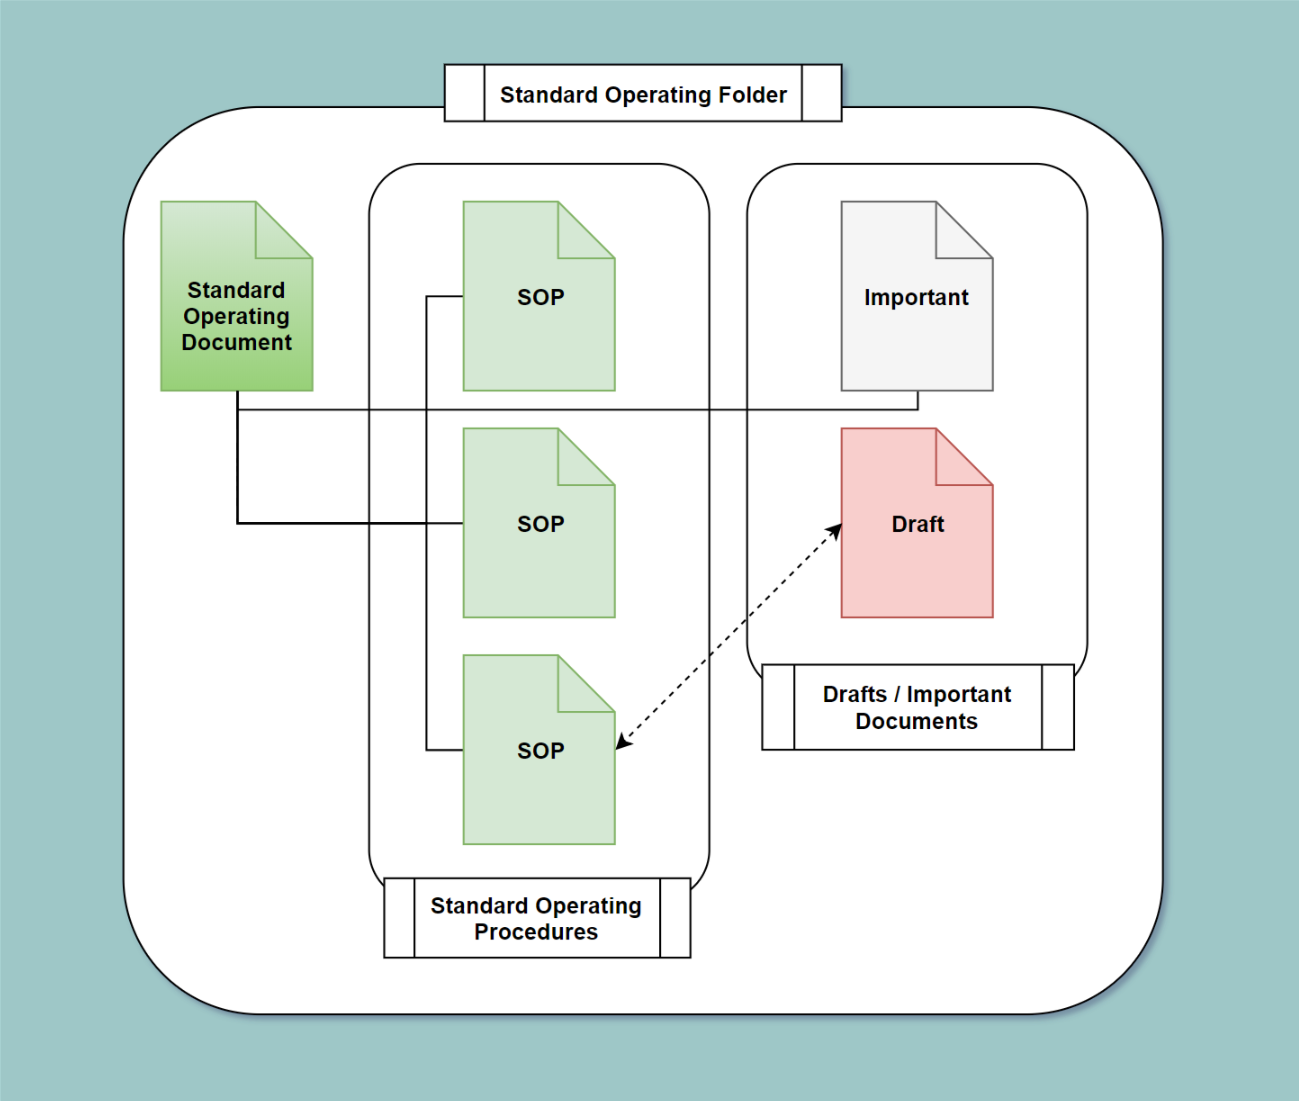 Building A Business Machine The Ultimate Guide To Standard Process Flow Diagram Google Docs Action Go Ahead And Make Folder In Drive Called Operating Two More Folders Inside This Titled